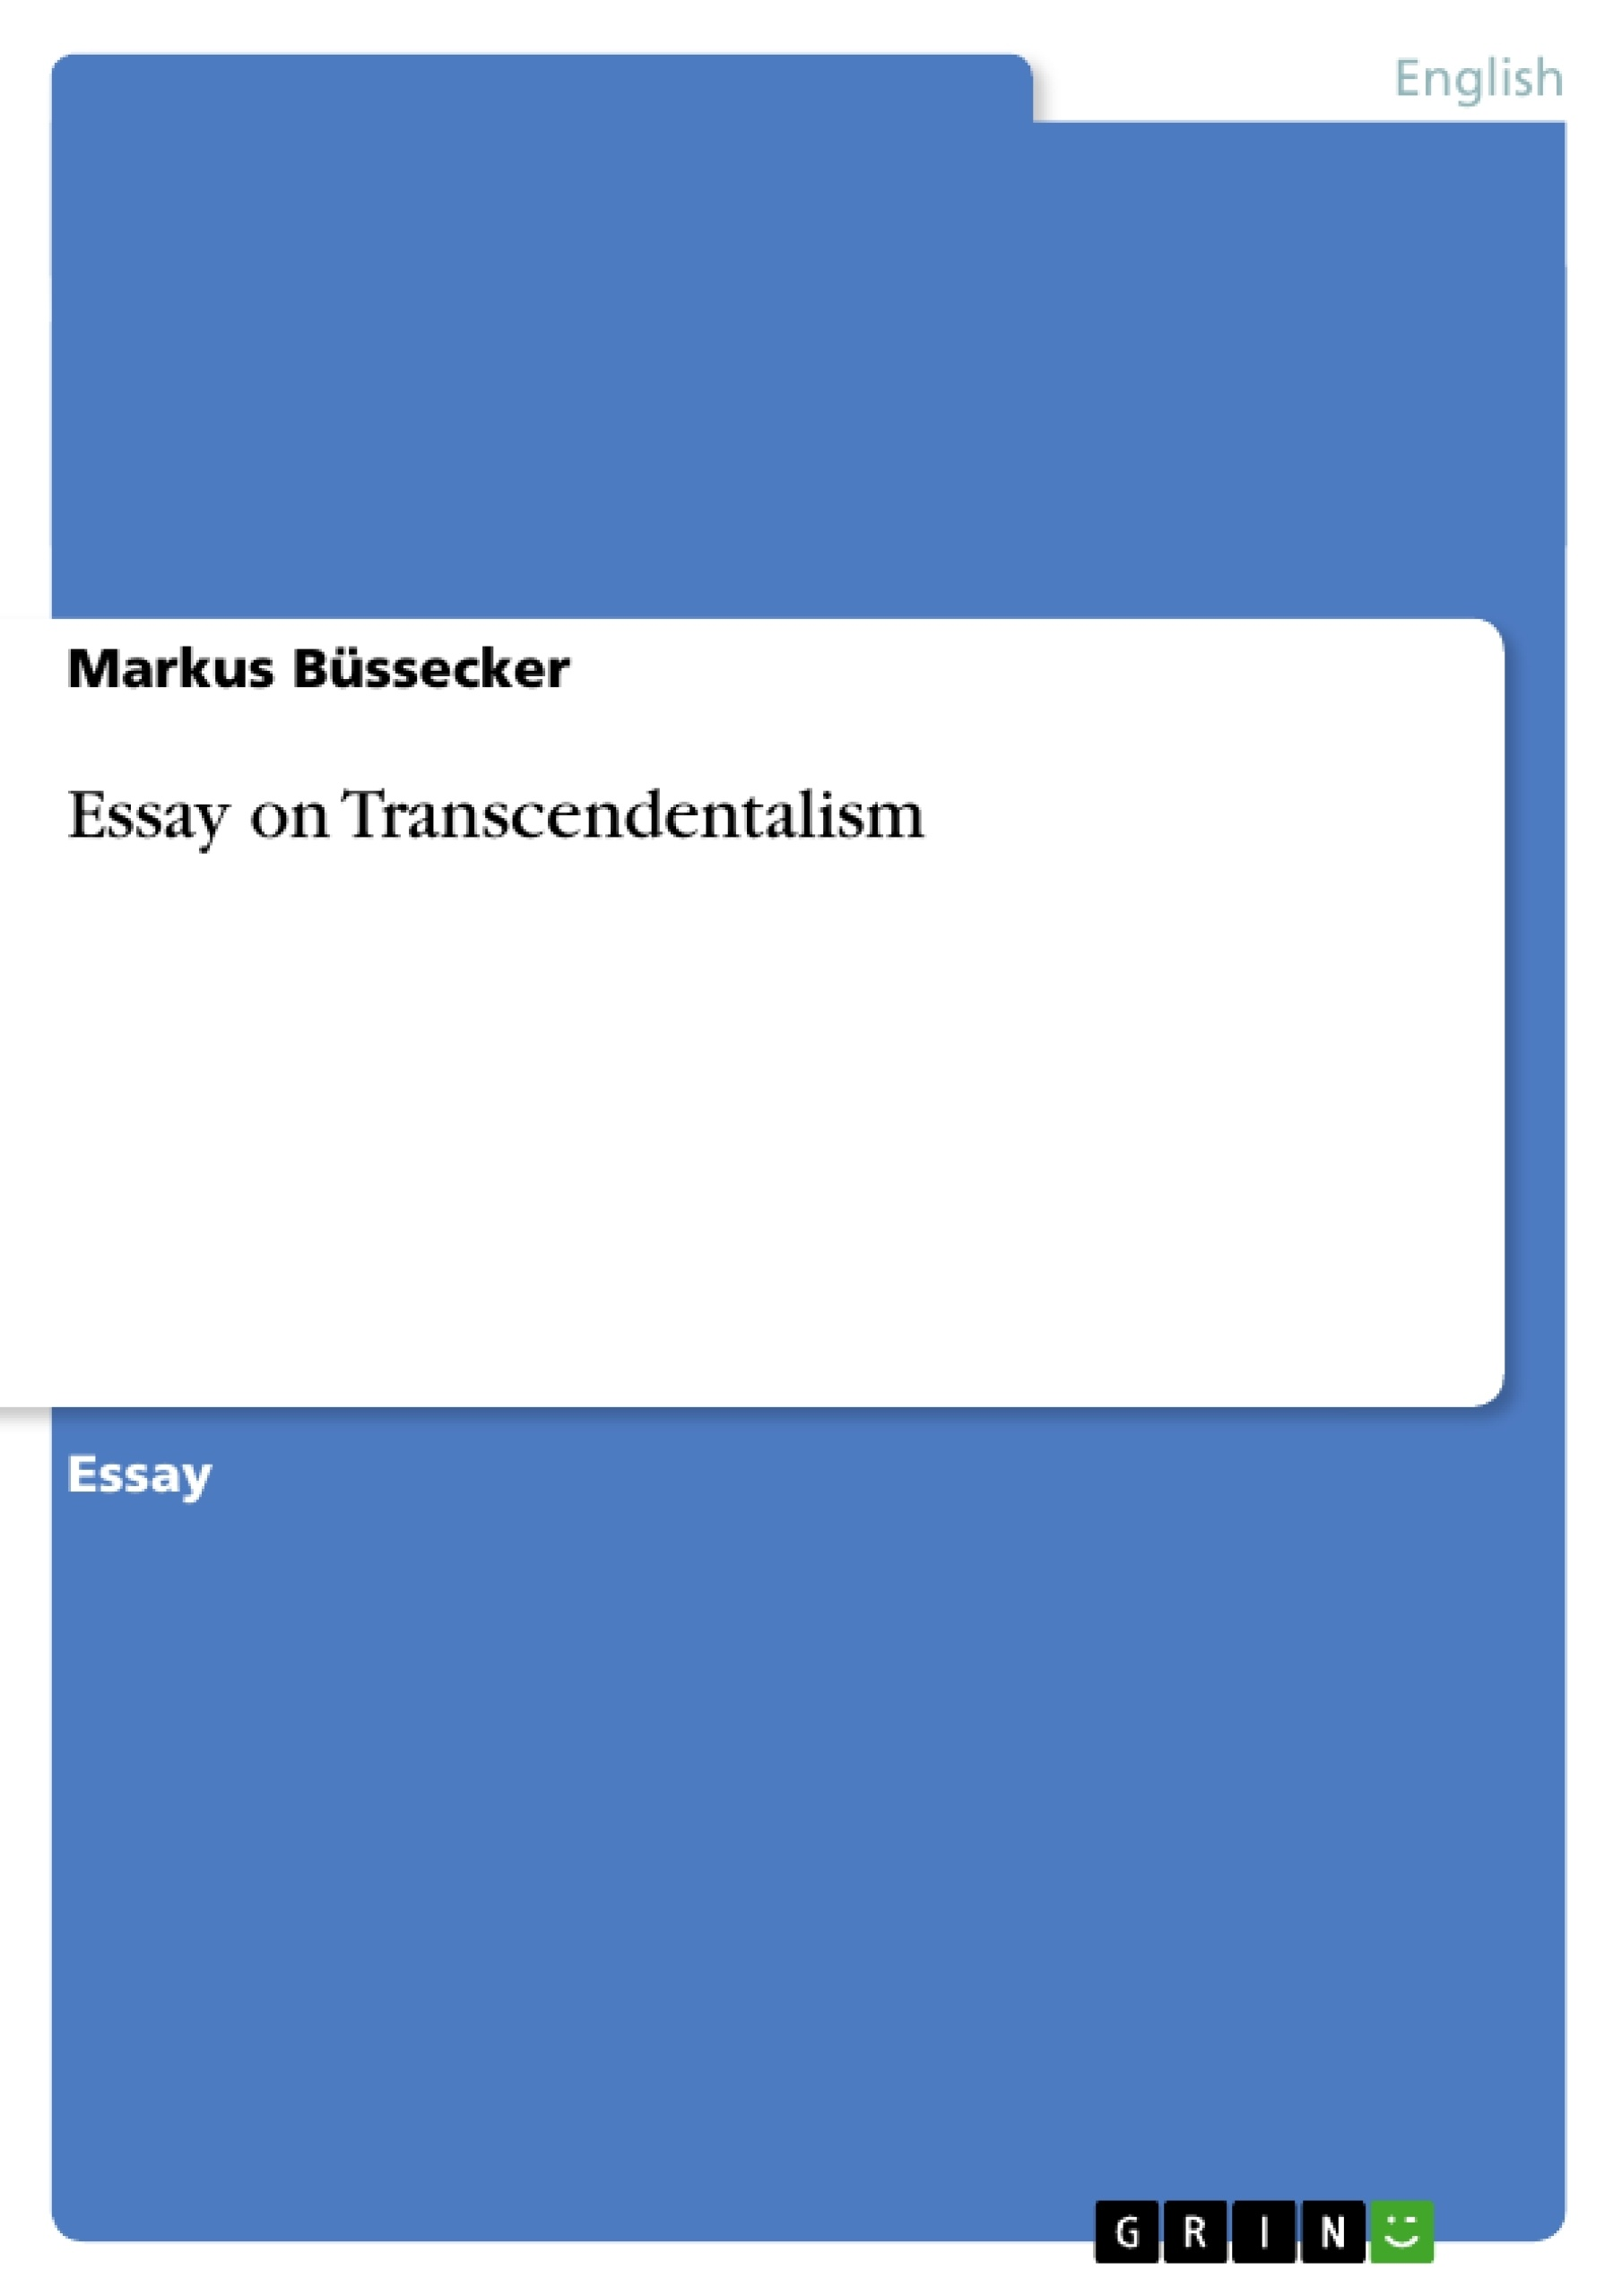 Essay On Transcendentalism  Publish Your Masters Thesis  Upload Your Own Papers Earn Money And Win An Iphone X Do My Assignment Java also Thesis For Argumentative Essay Examples  Essays About High School